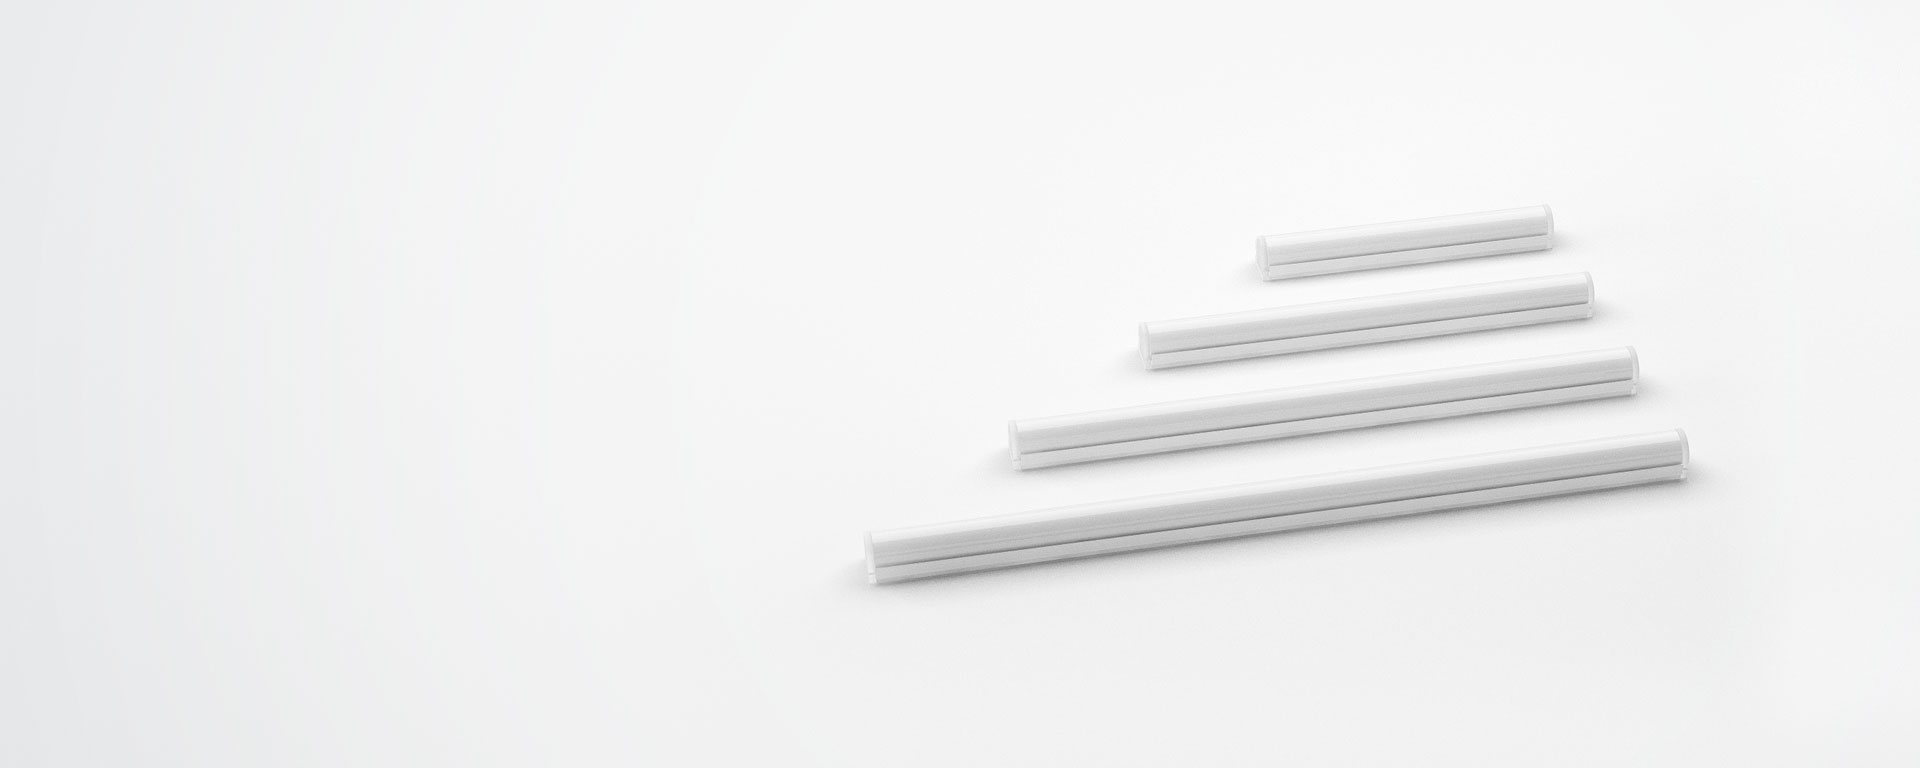 Highly versatile length options allow the user to achieve accurate and adaptable lengths.  Alto can achieve any desired length in 37.5mm increments.